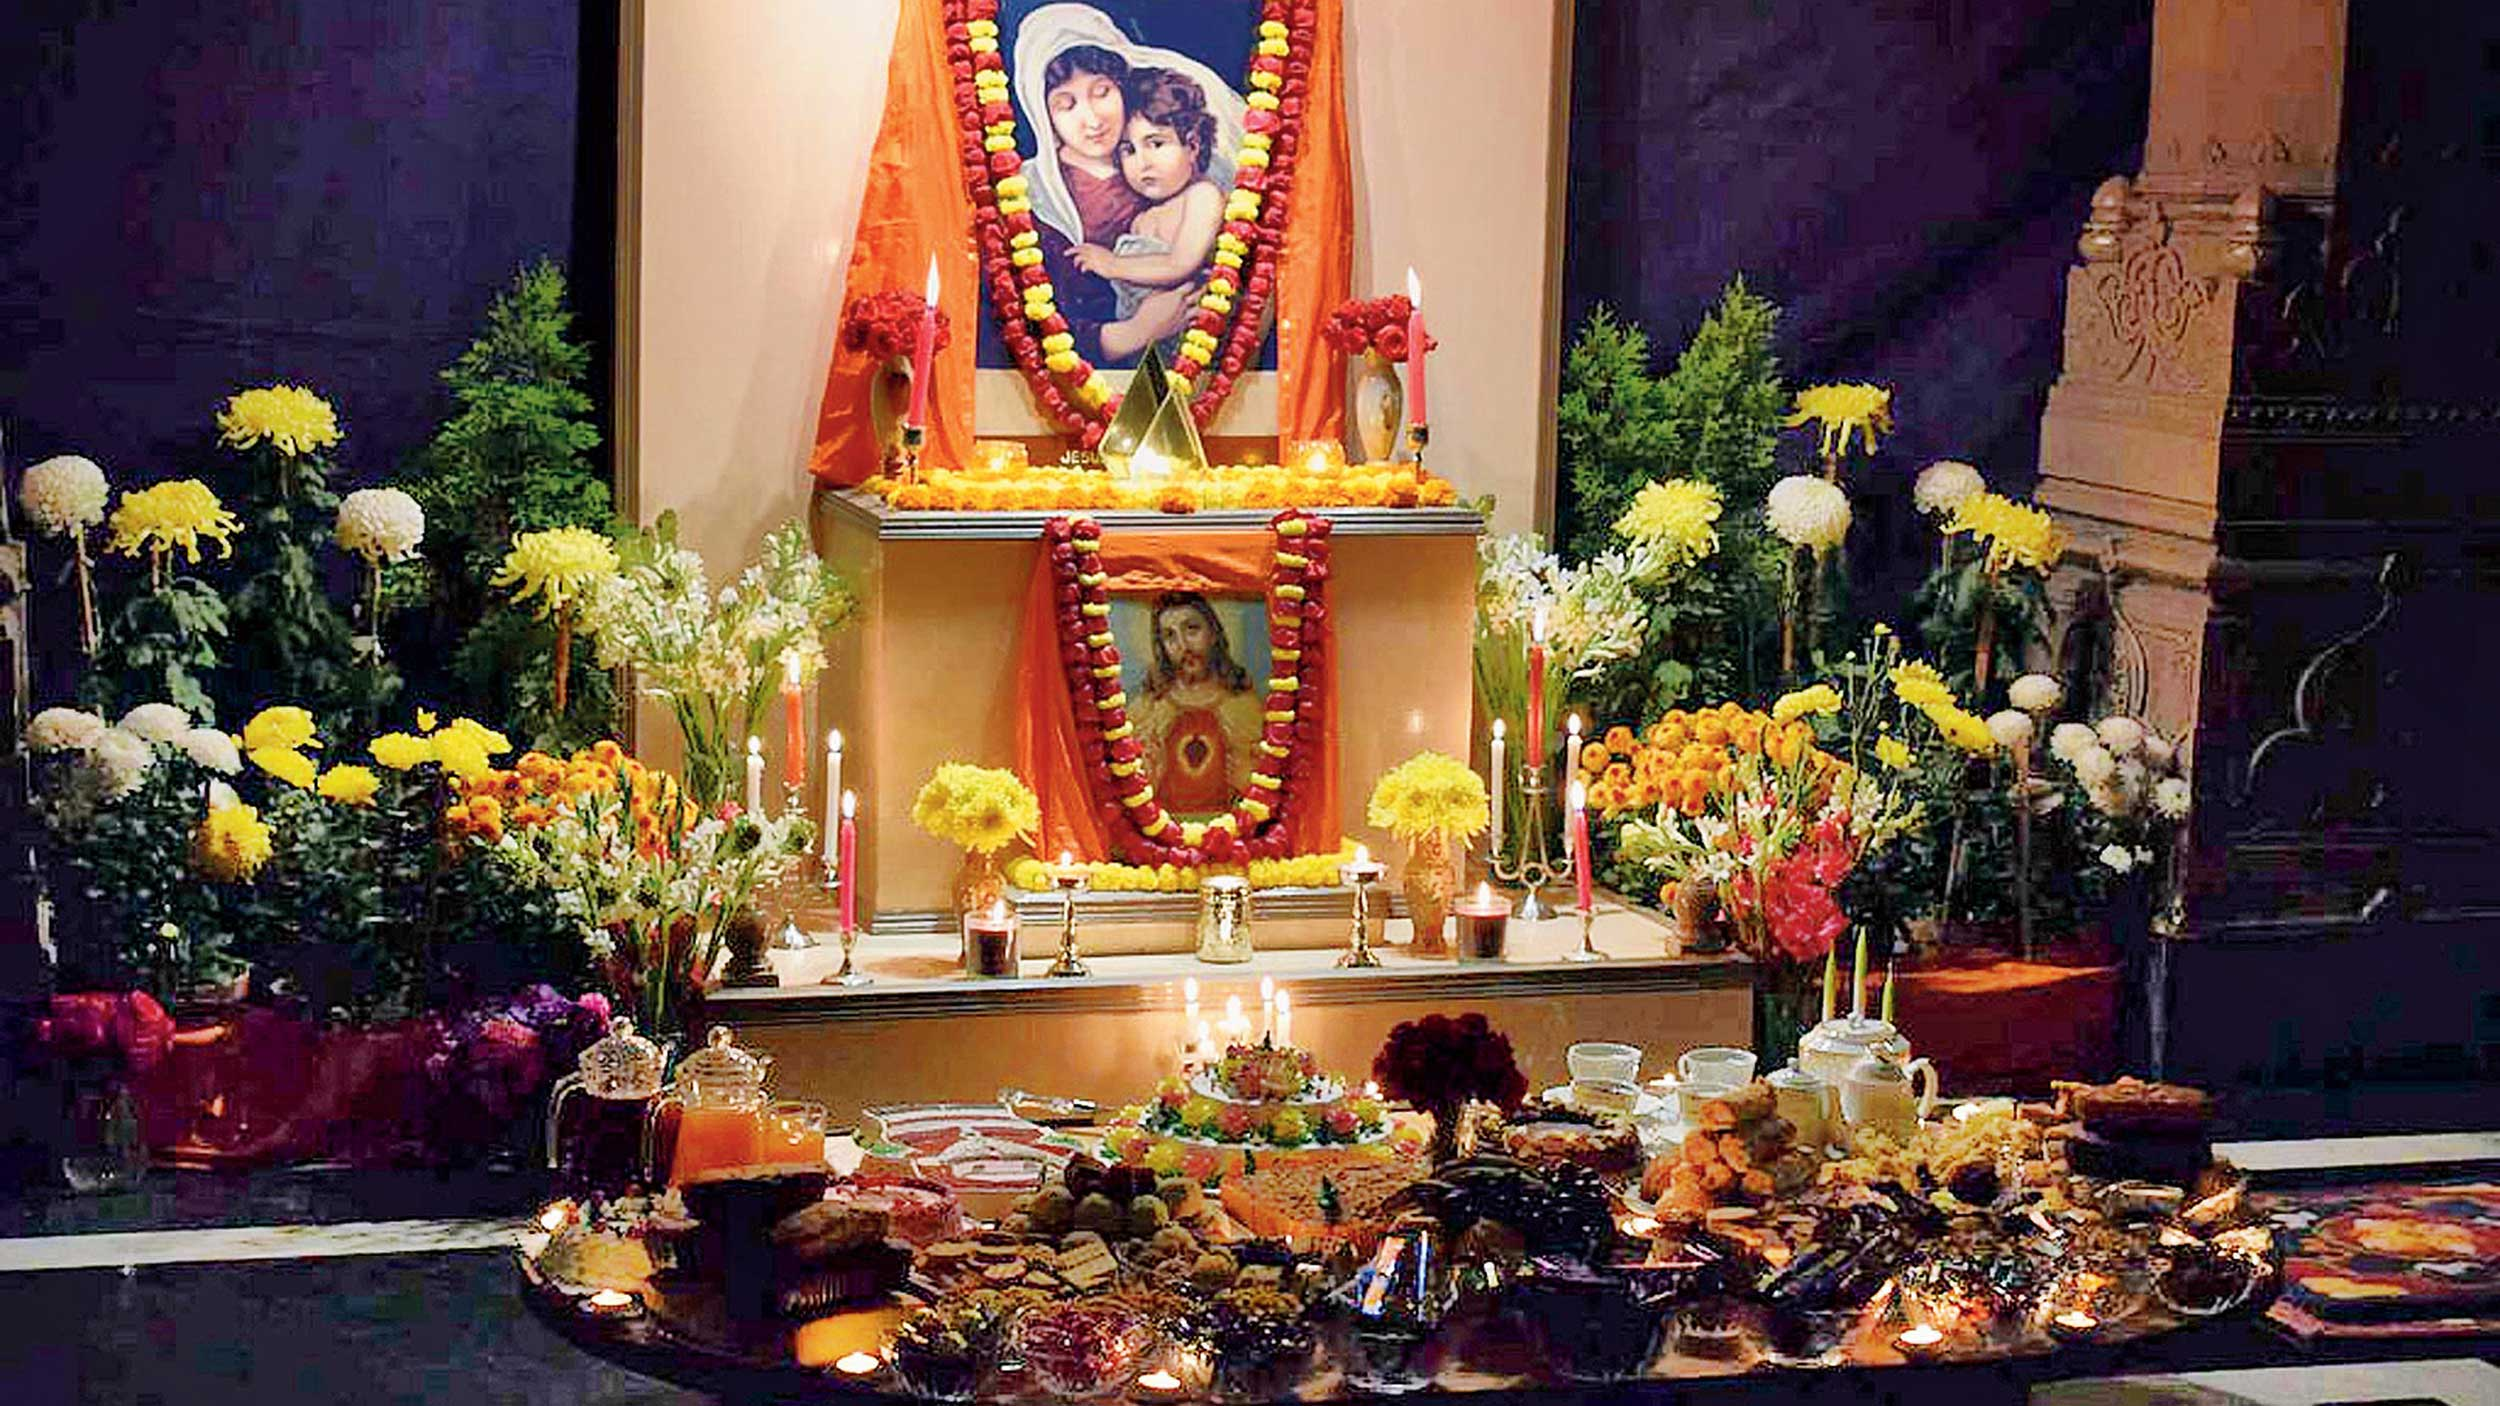 On Christmas Eve, 2017, like every year, a pedestal was adorned with pictures of Jesus and Mother Mary at Belur Math, an enactment of the spirit of Vivekananda.